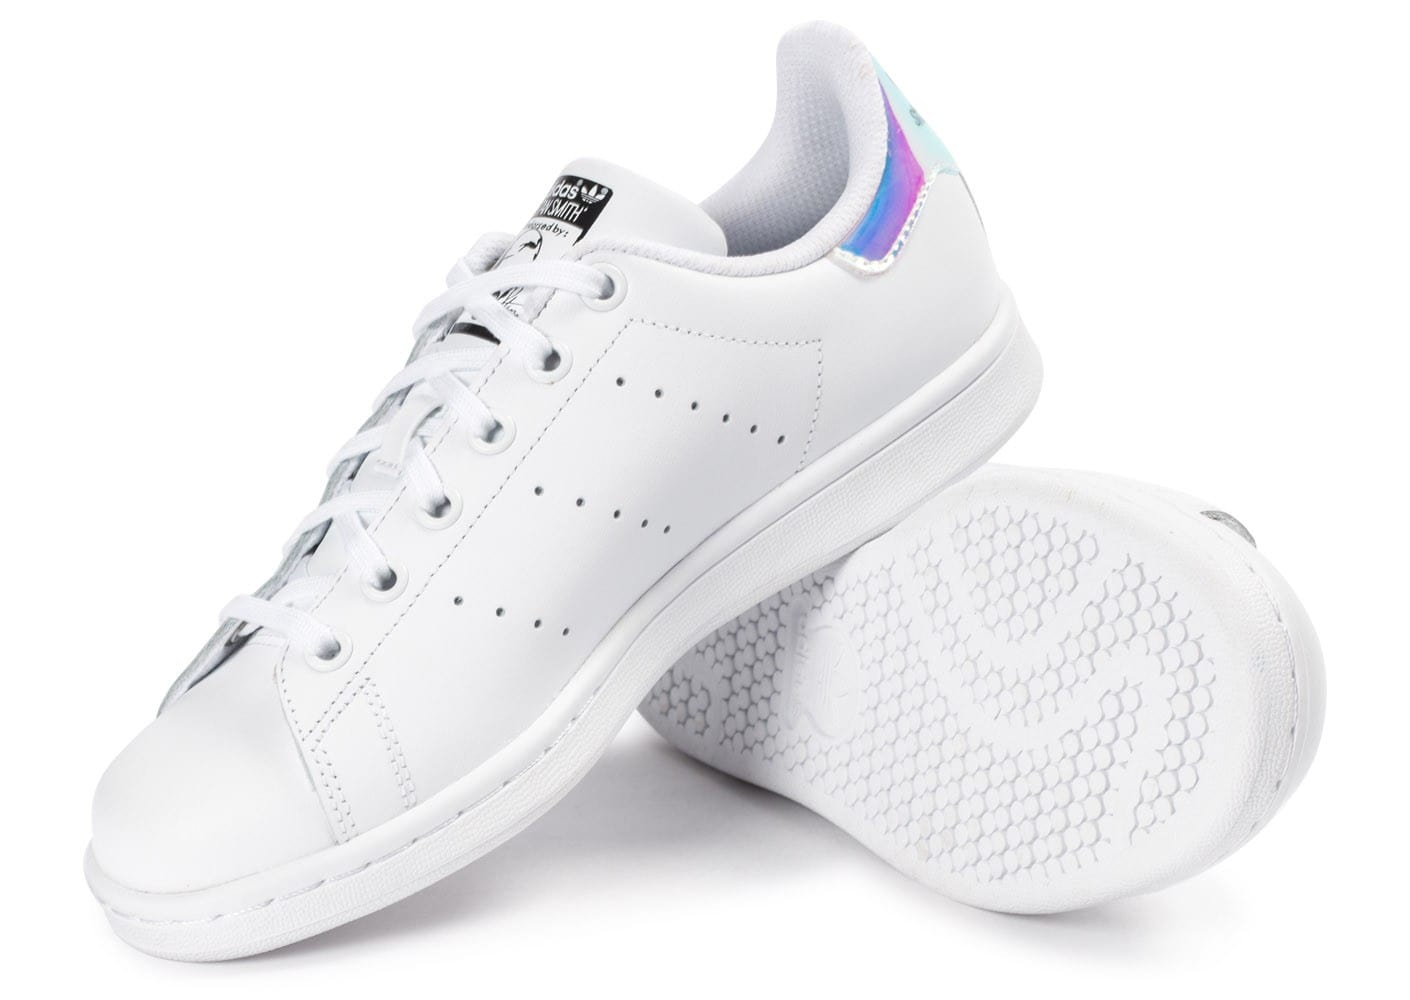 Chausport Iridescente Adidas Stan Chaussures Smith Blanche tCQodshxBr